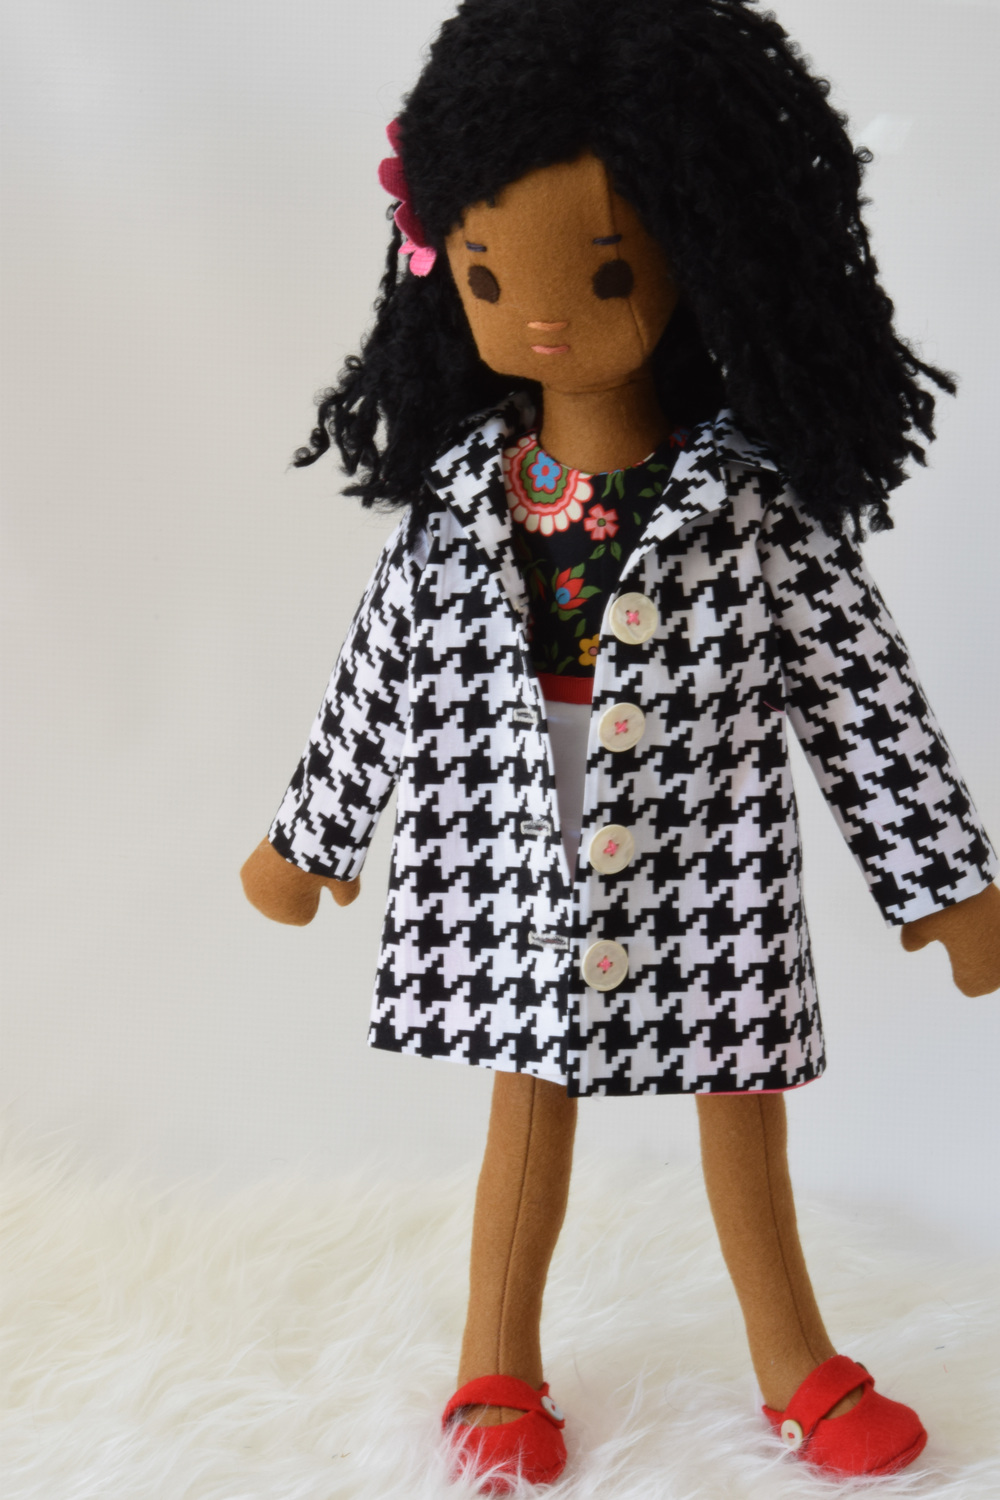 The Handmade Dolls-642.jpg